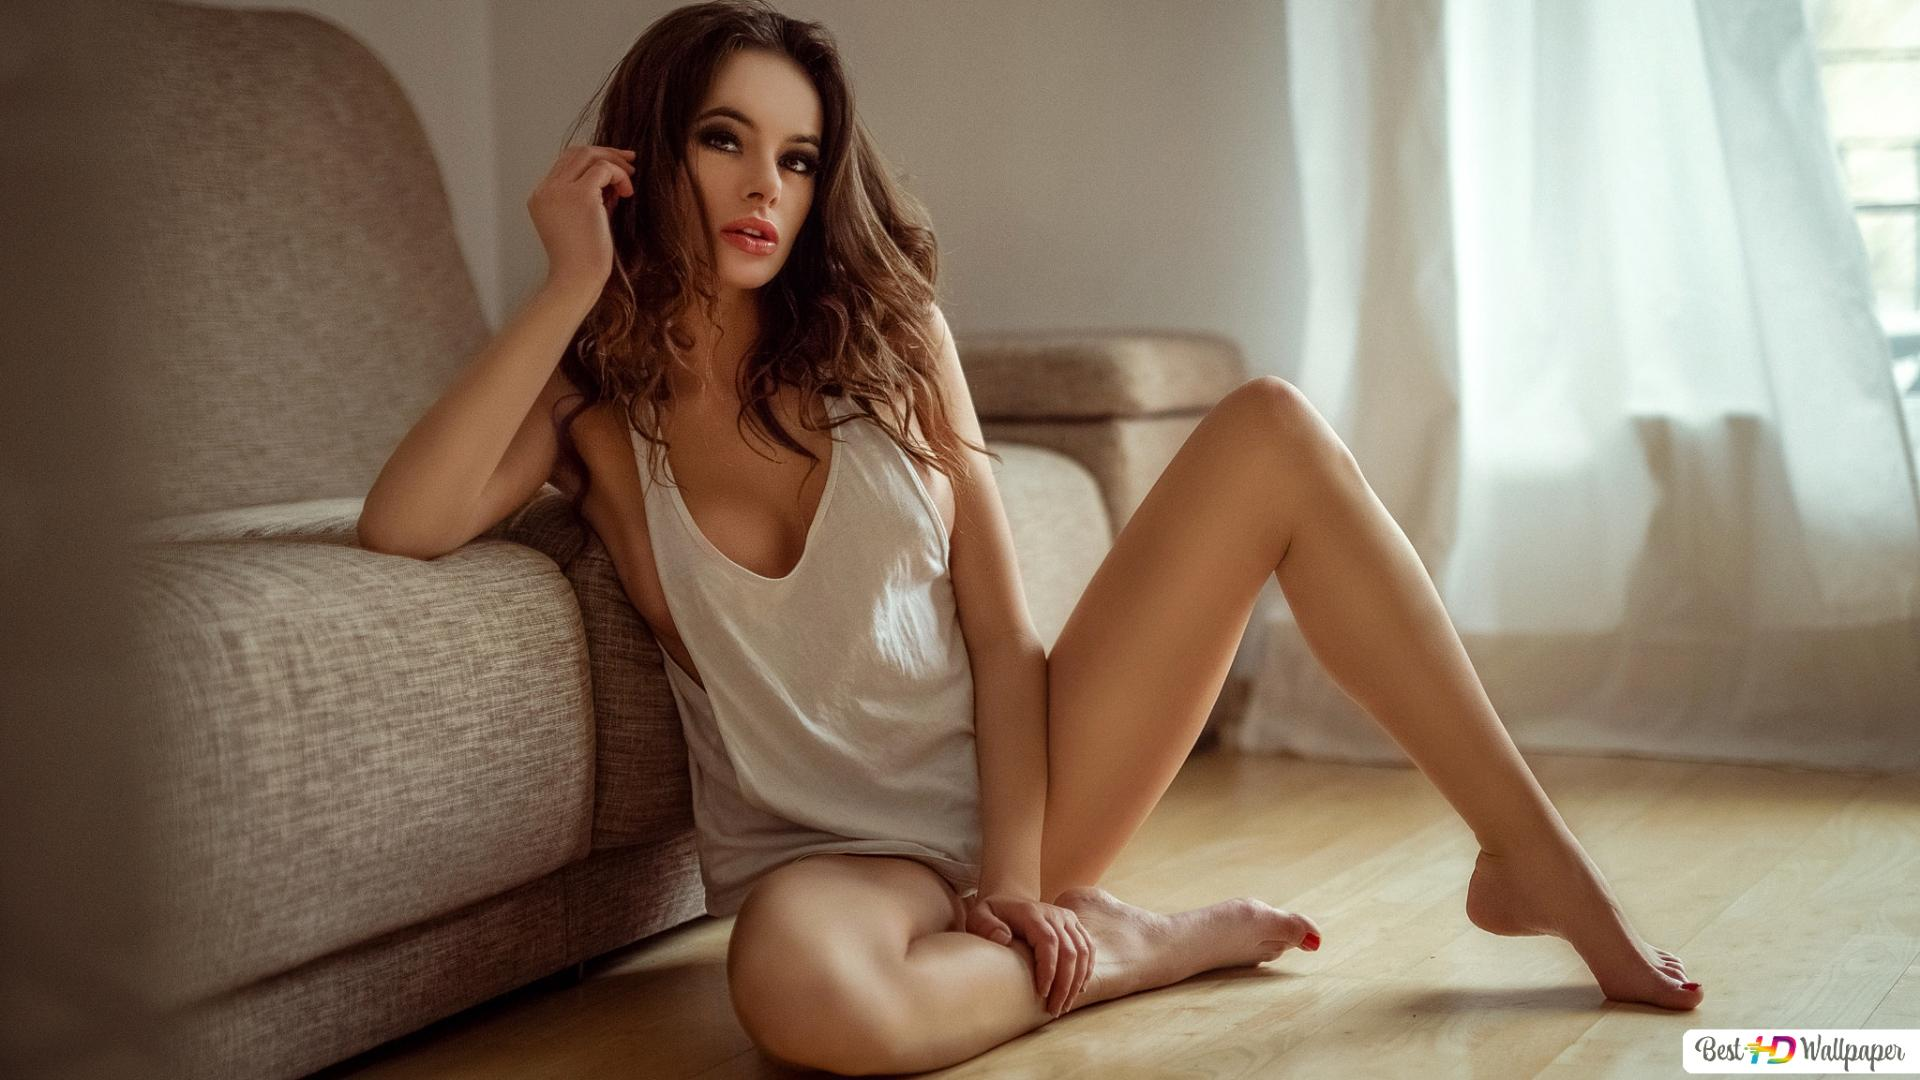 Sexy Girl Sitting On The Floor Hd Wallpaper Download